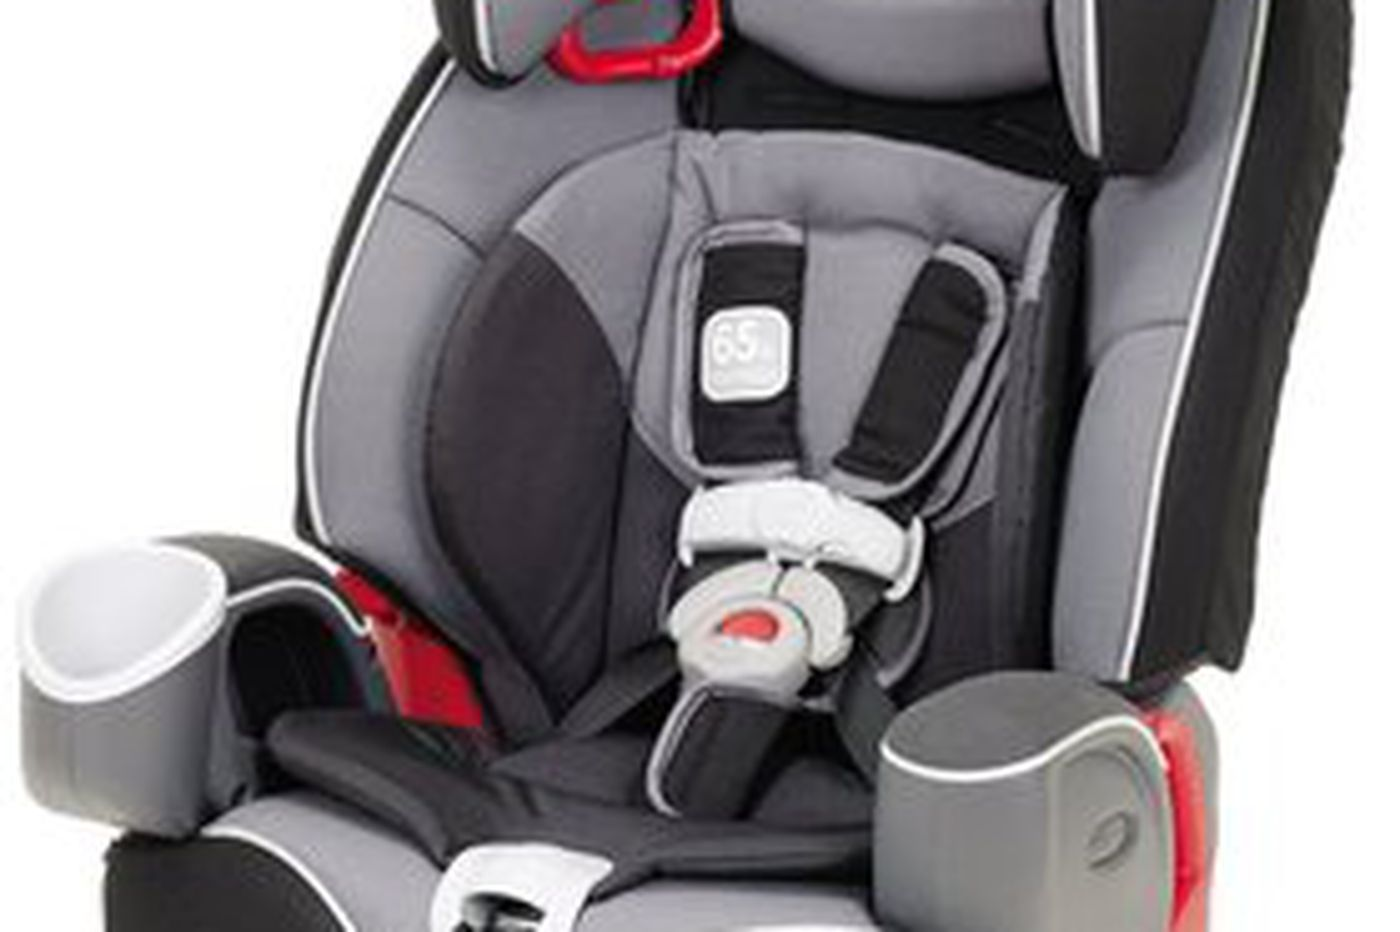 Car seat for the ages